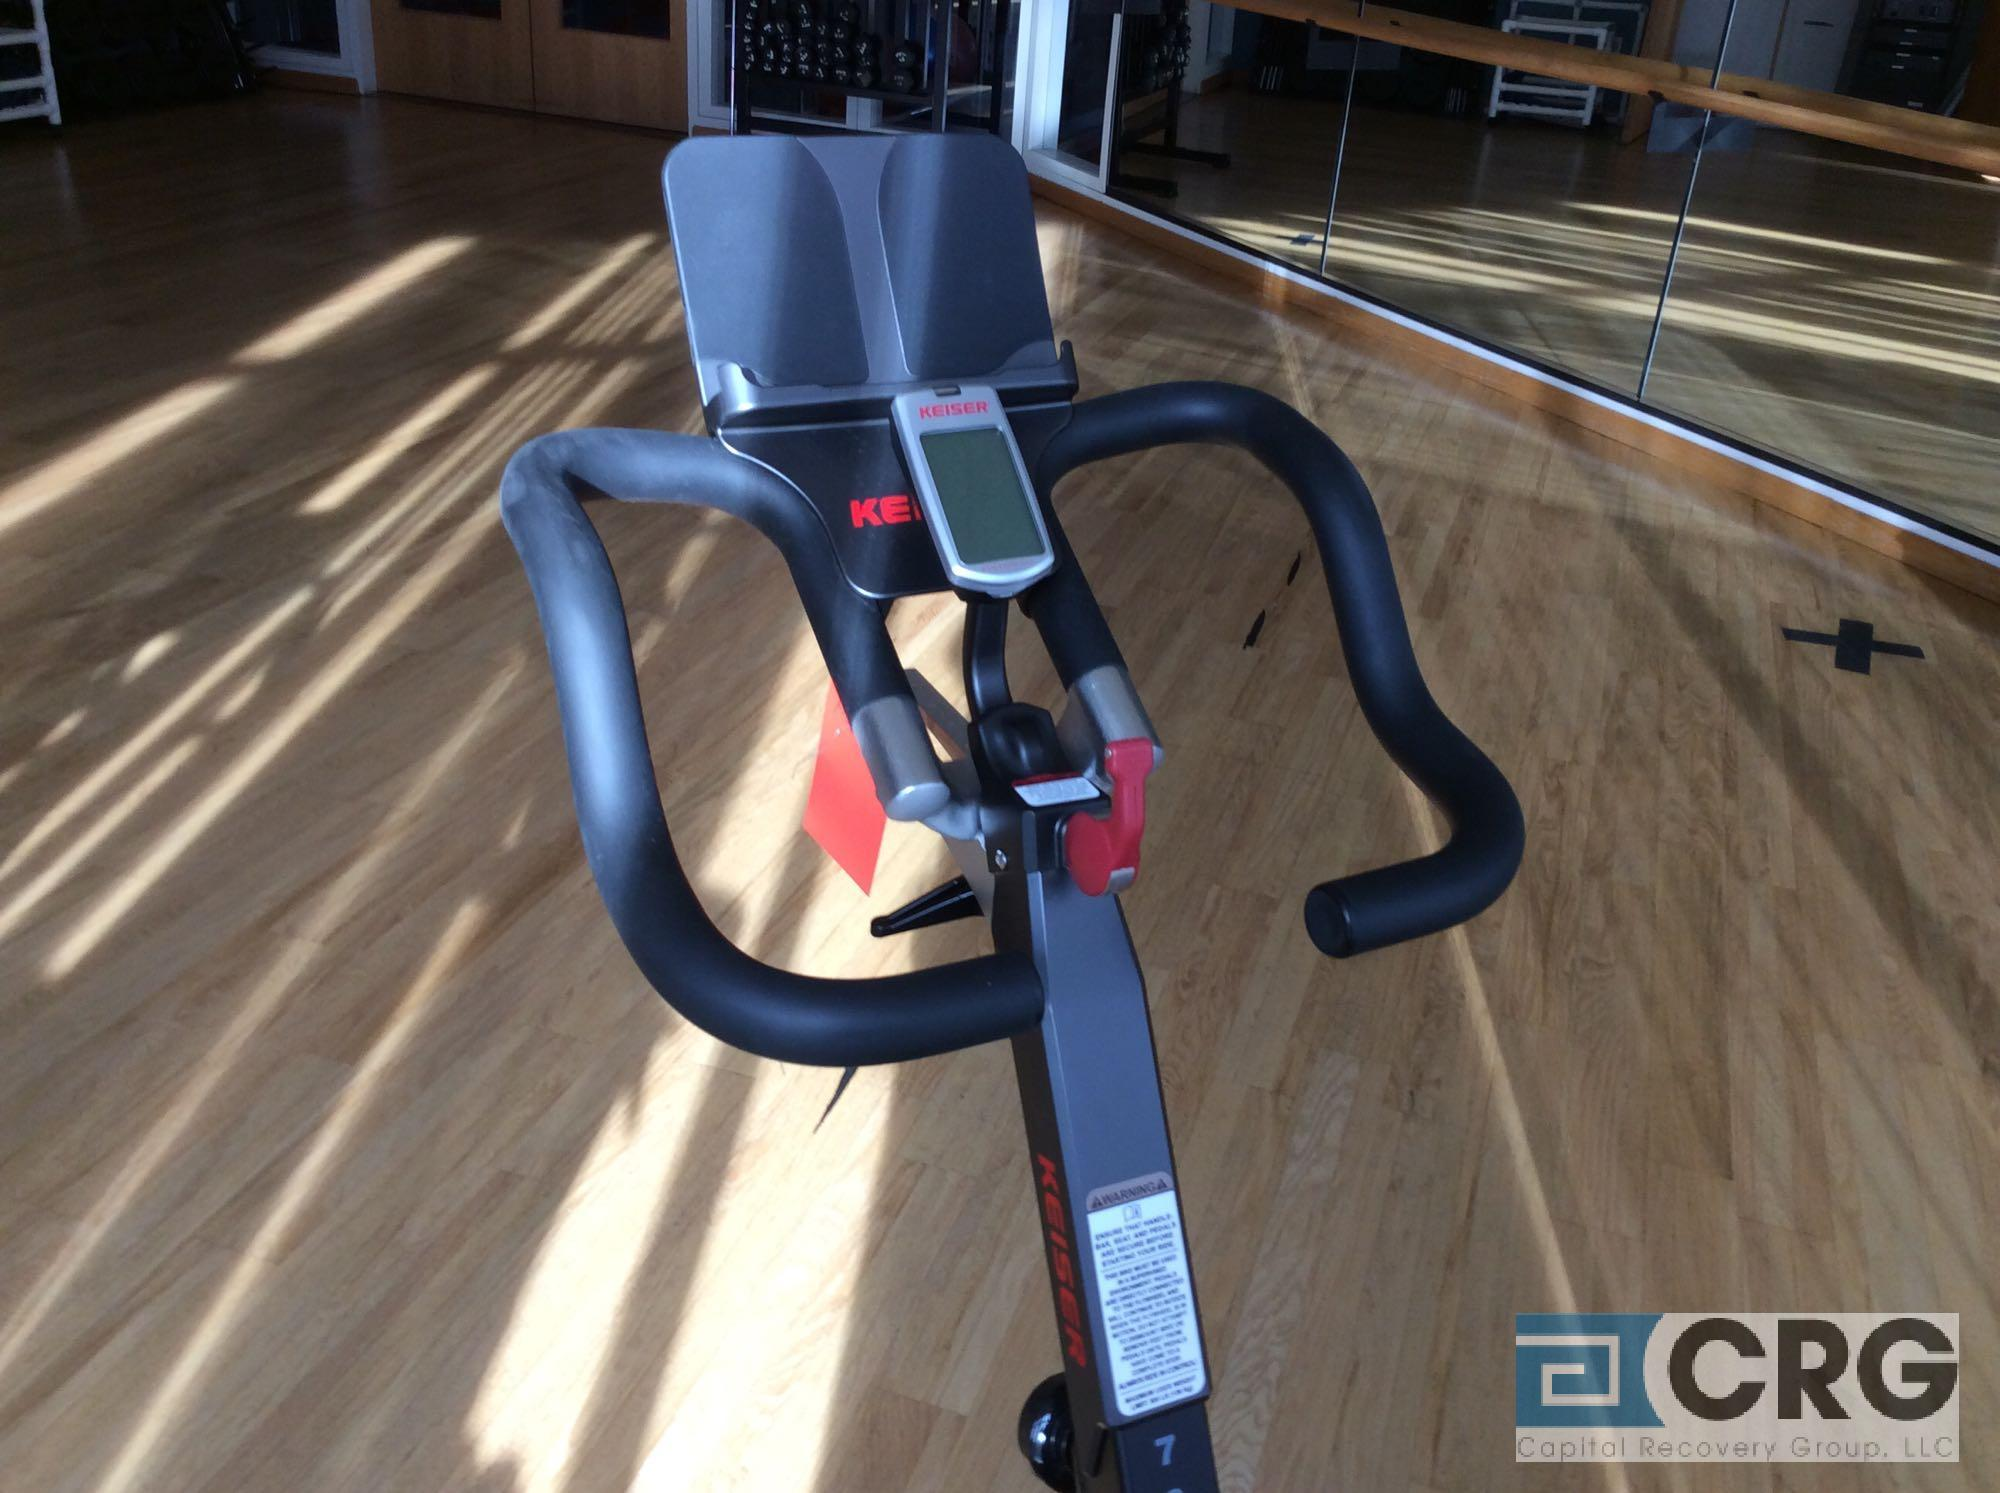 Lot 141 - Keiser M3i Spinning Cycle with Digital Readout